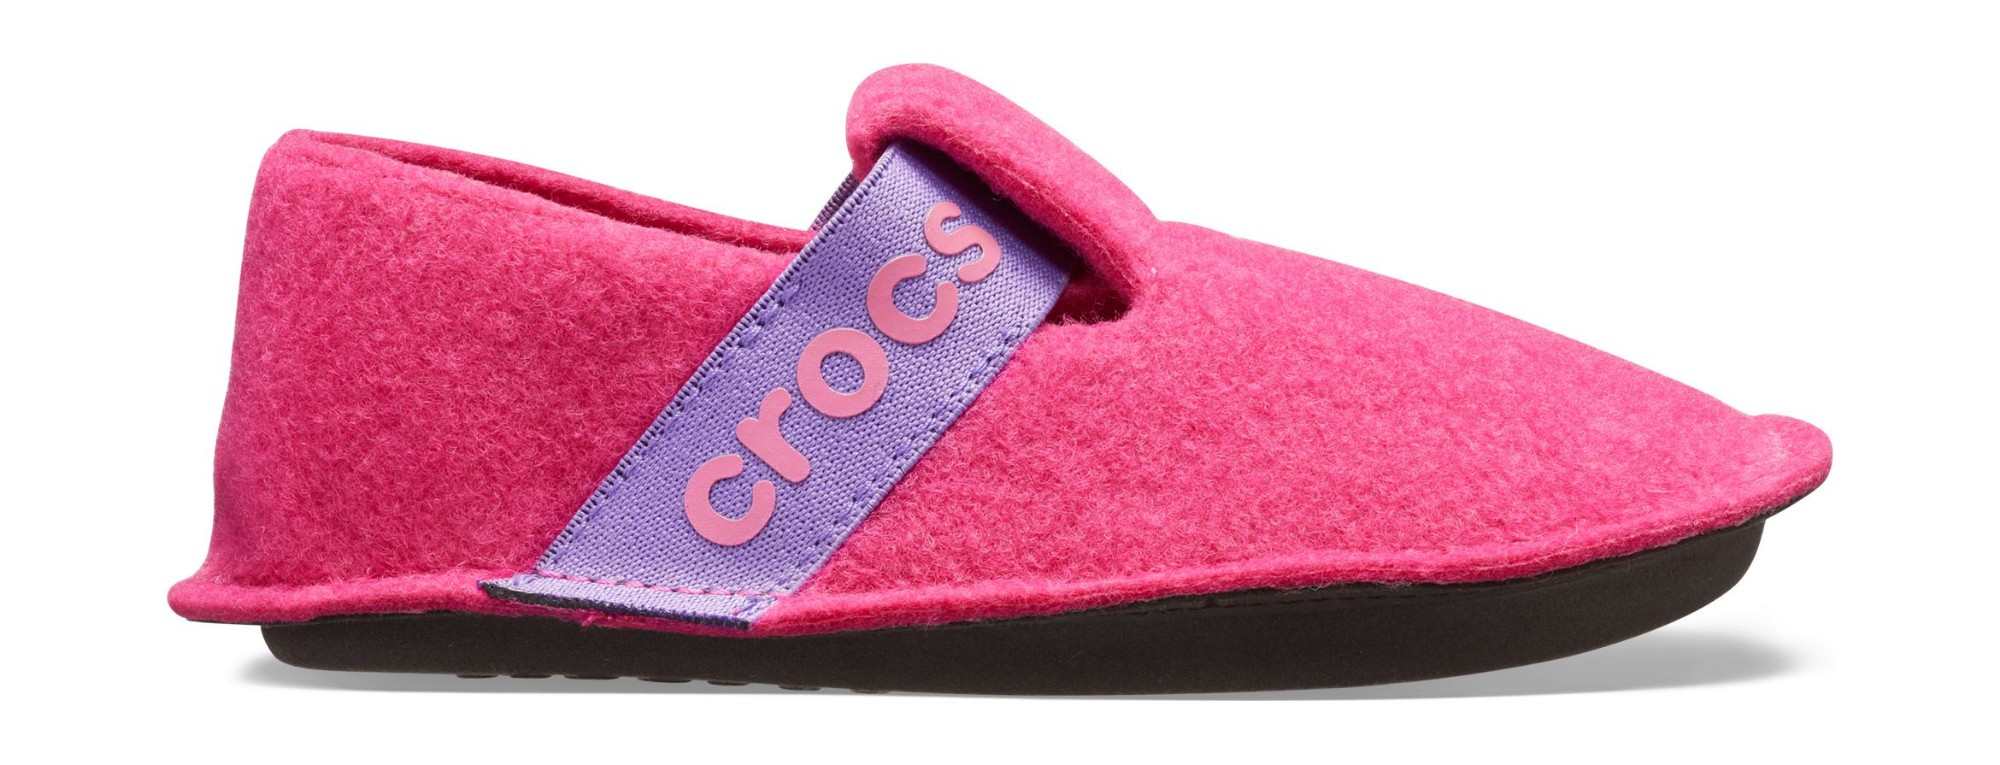 Crocs™ Kids' Classic Slipper Candy Pink 27